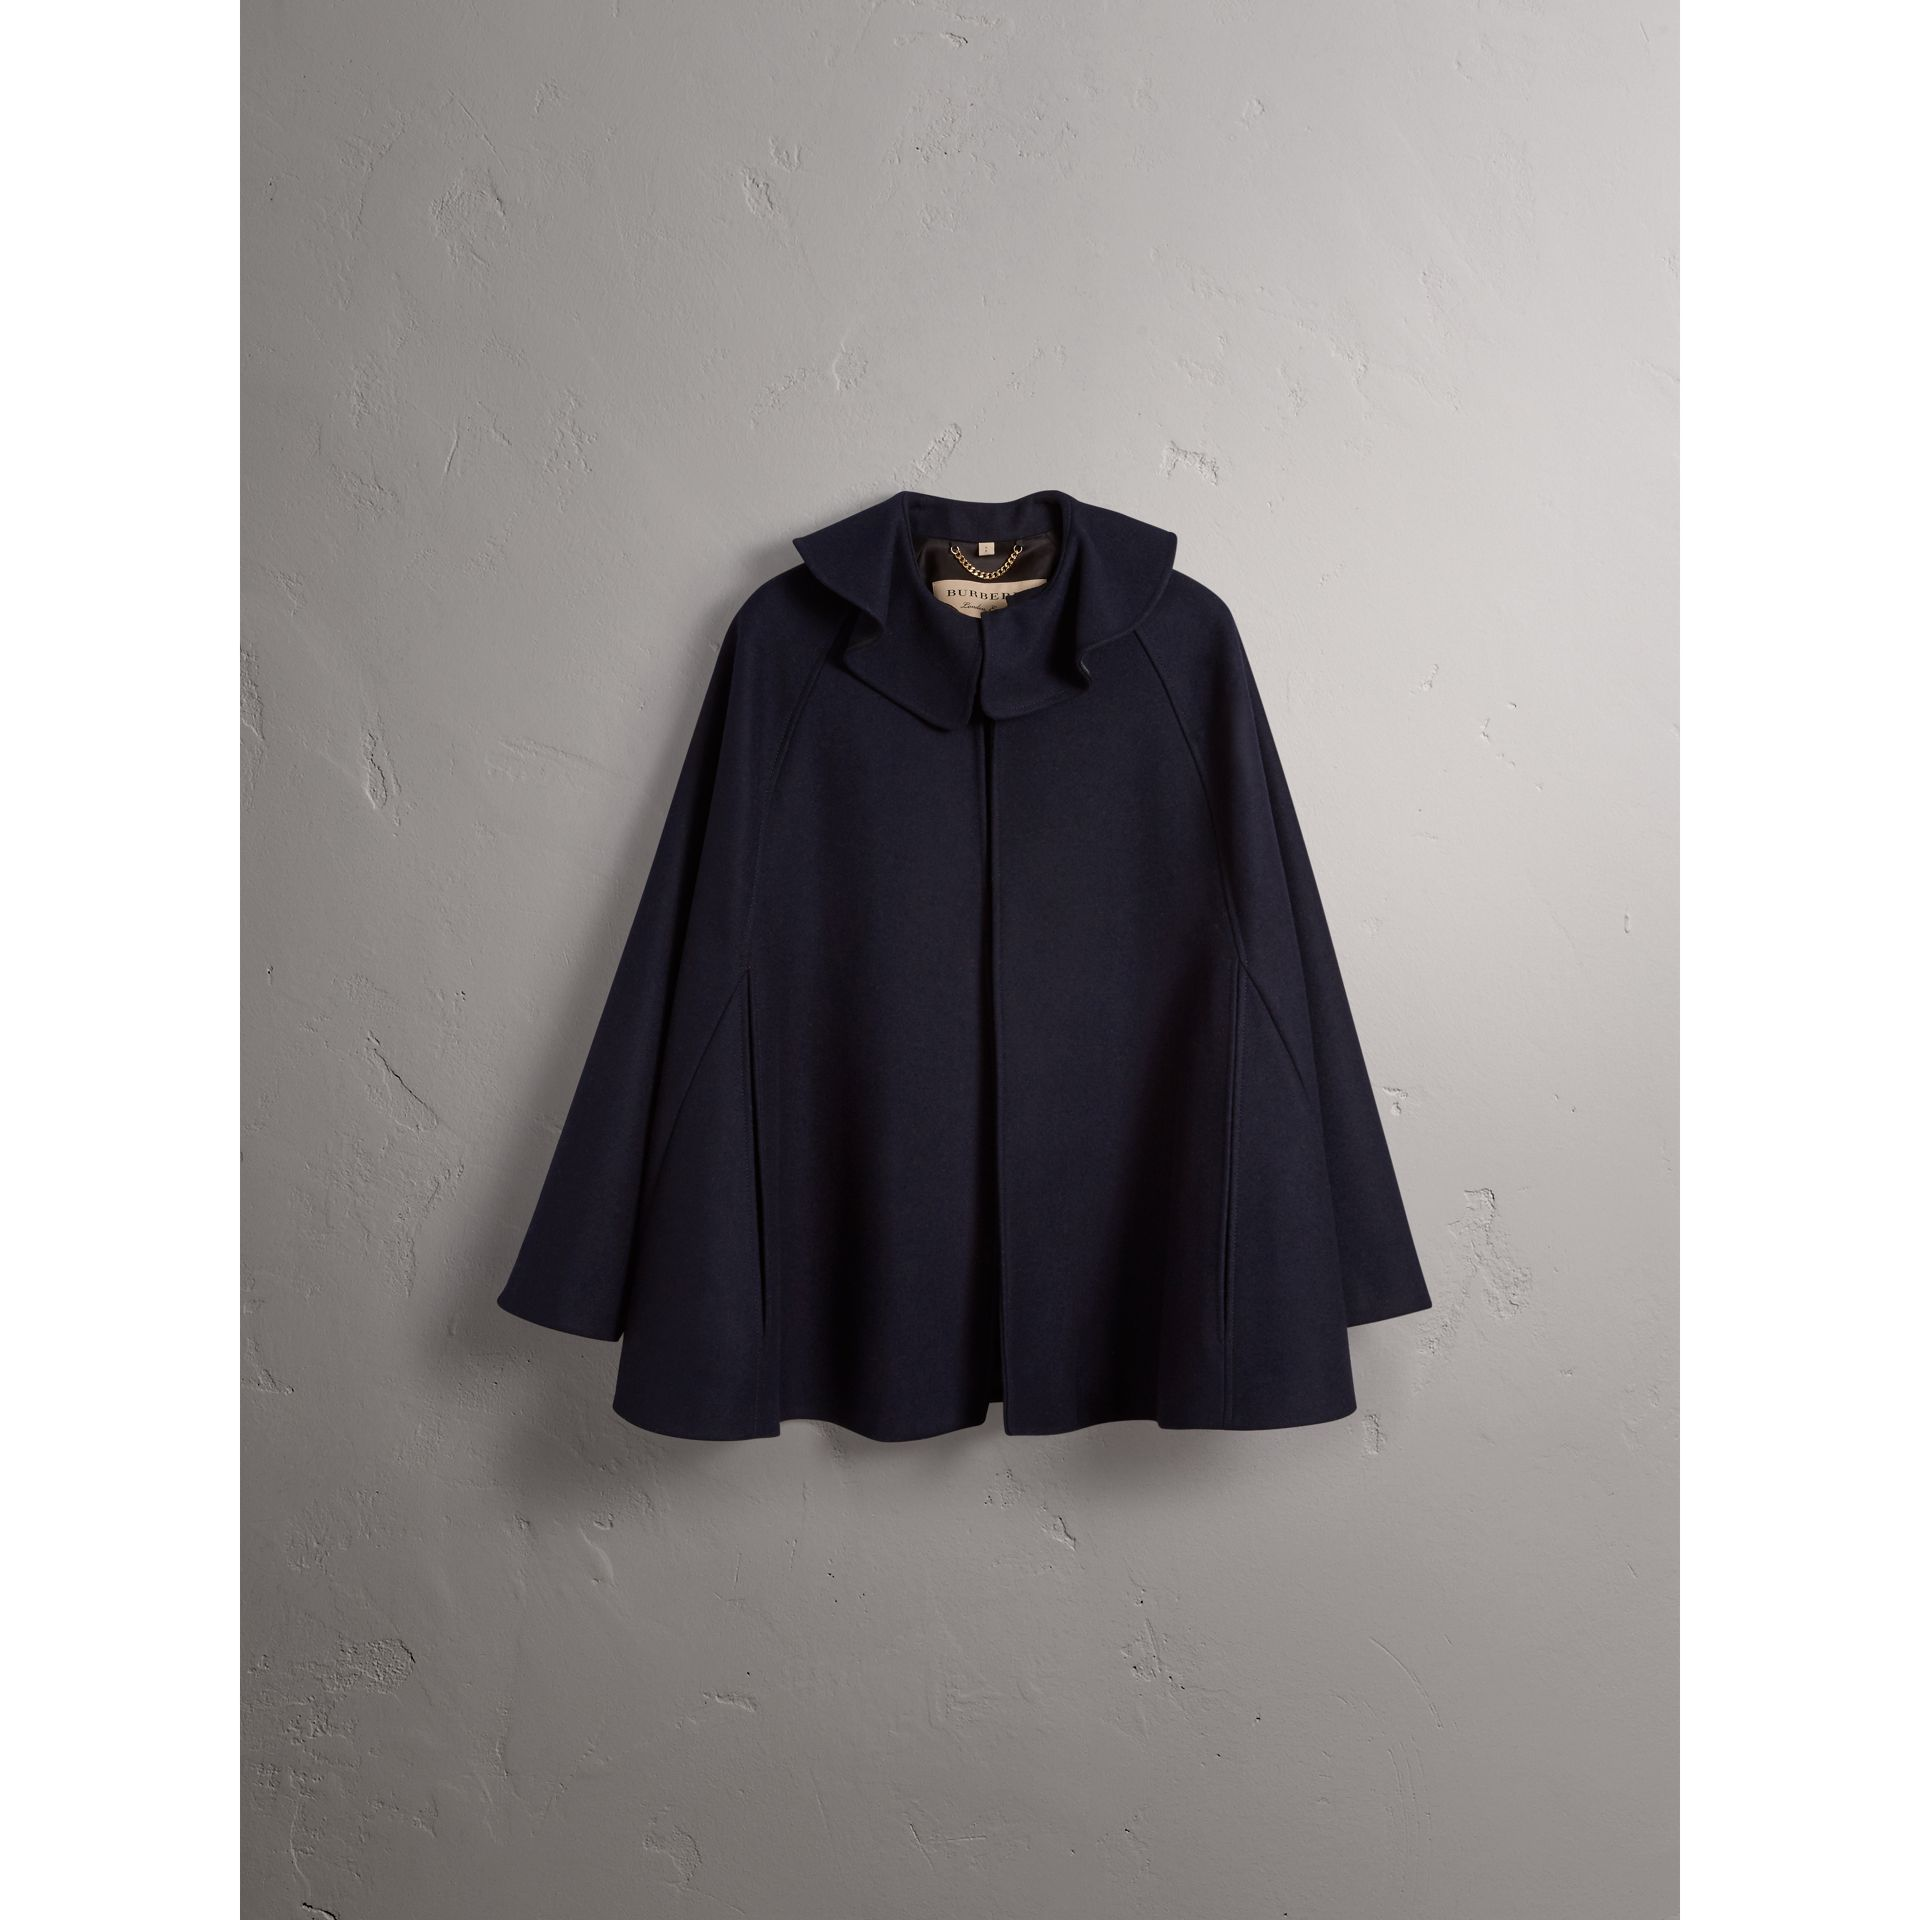 Ruffle Collar Wool Cape in True Navy - Women | Burberry Canada - gallery image 3